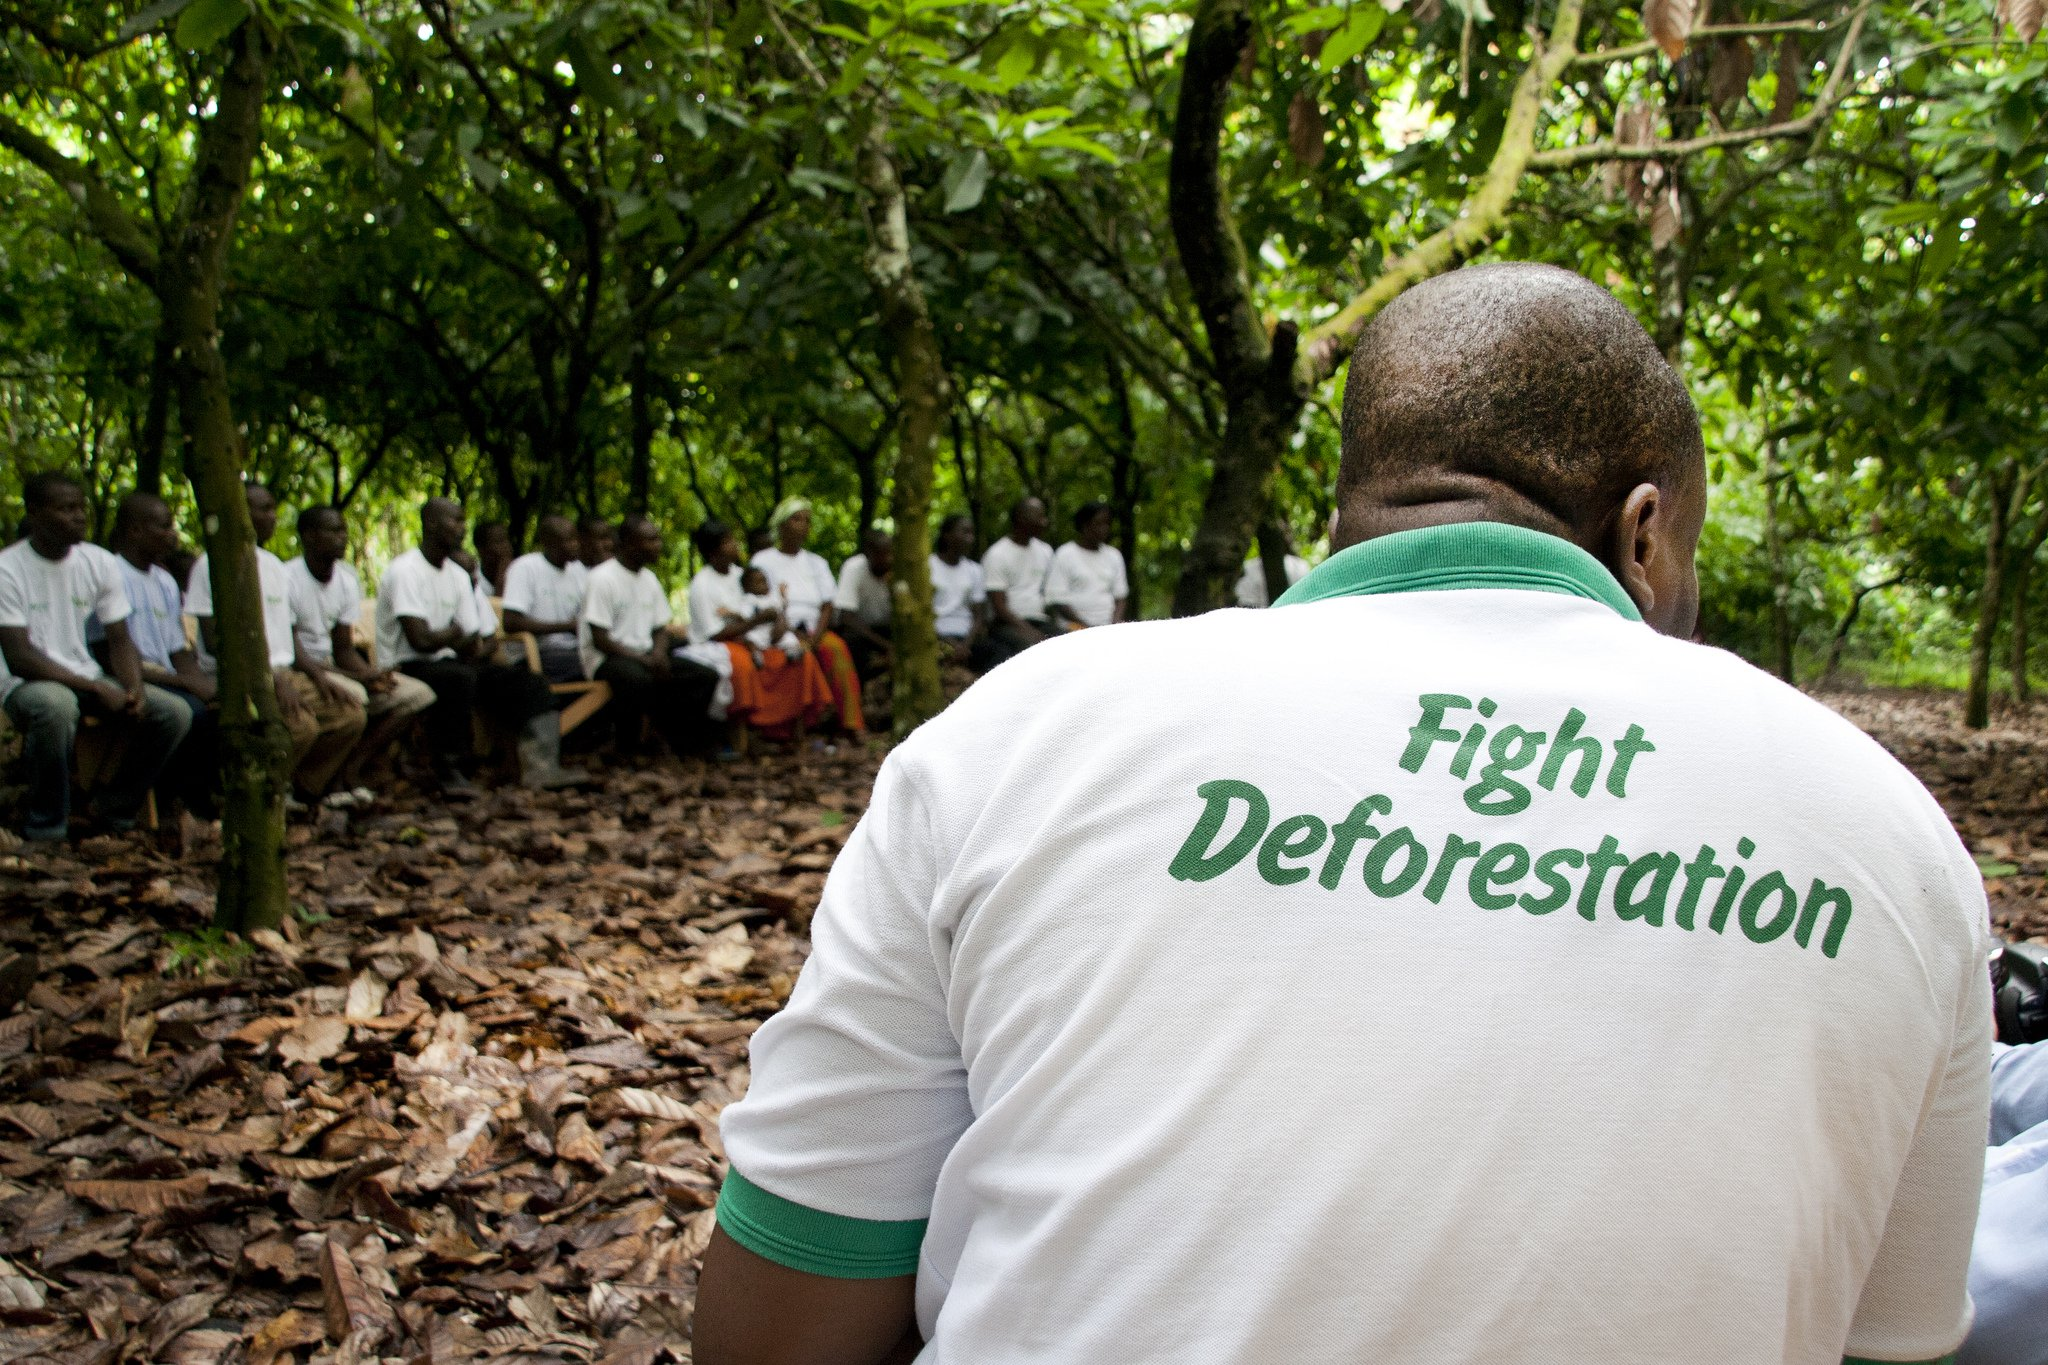 Fight Deforestation - Rainforest Alliance.jpg